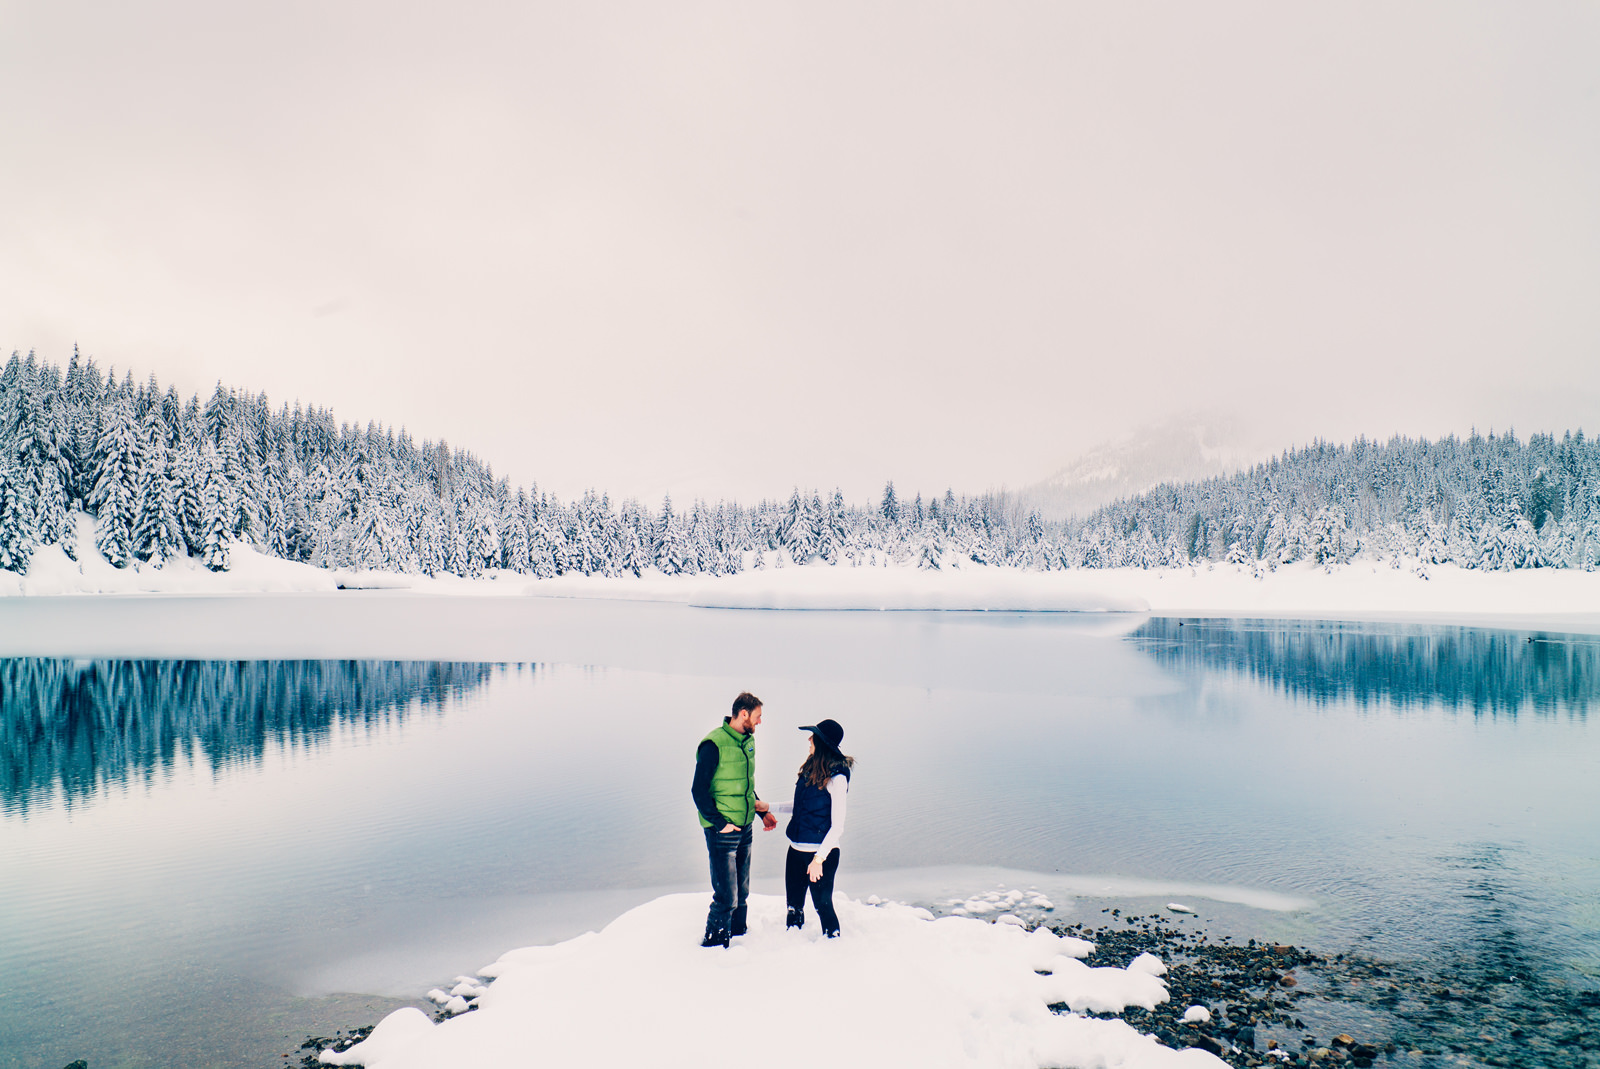 099-snowy-lake-engagement-session-by-washington-mountain-photographer-ryan-flynn.jpg